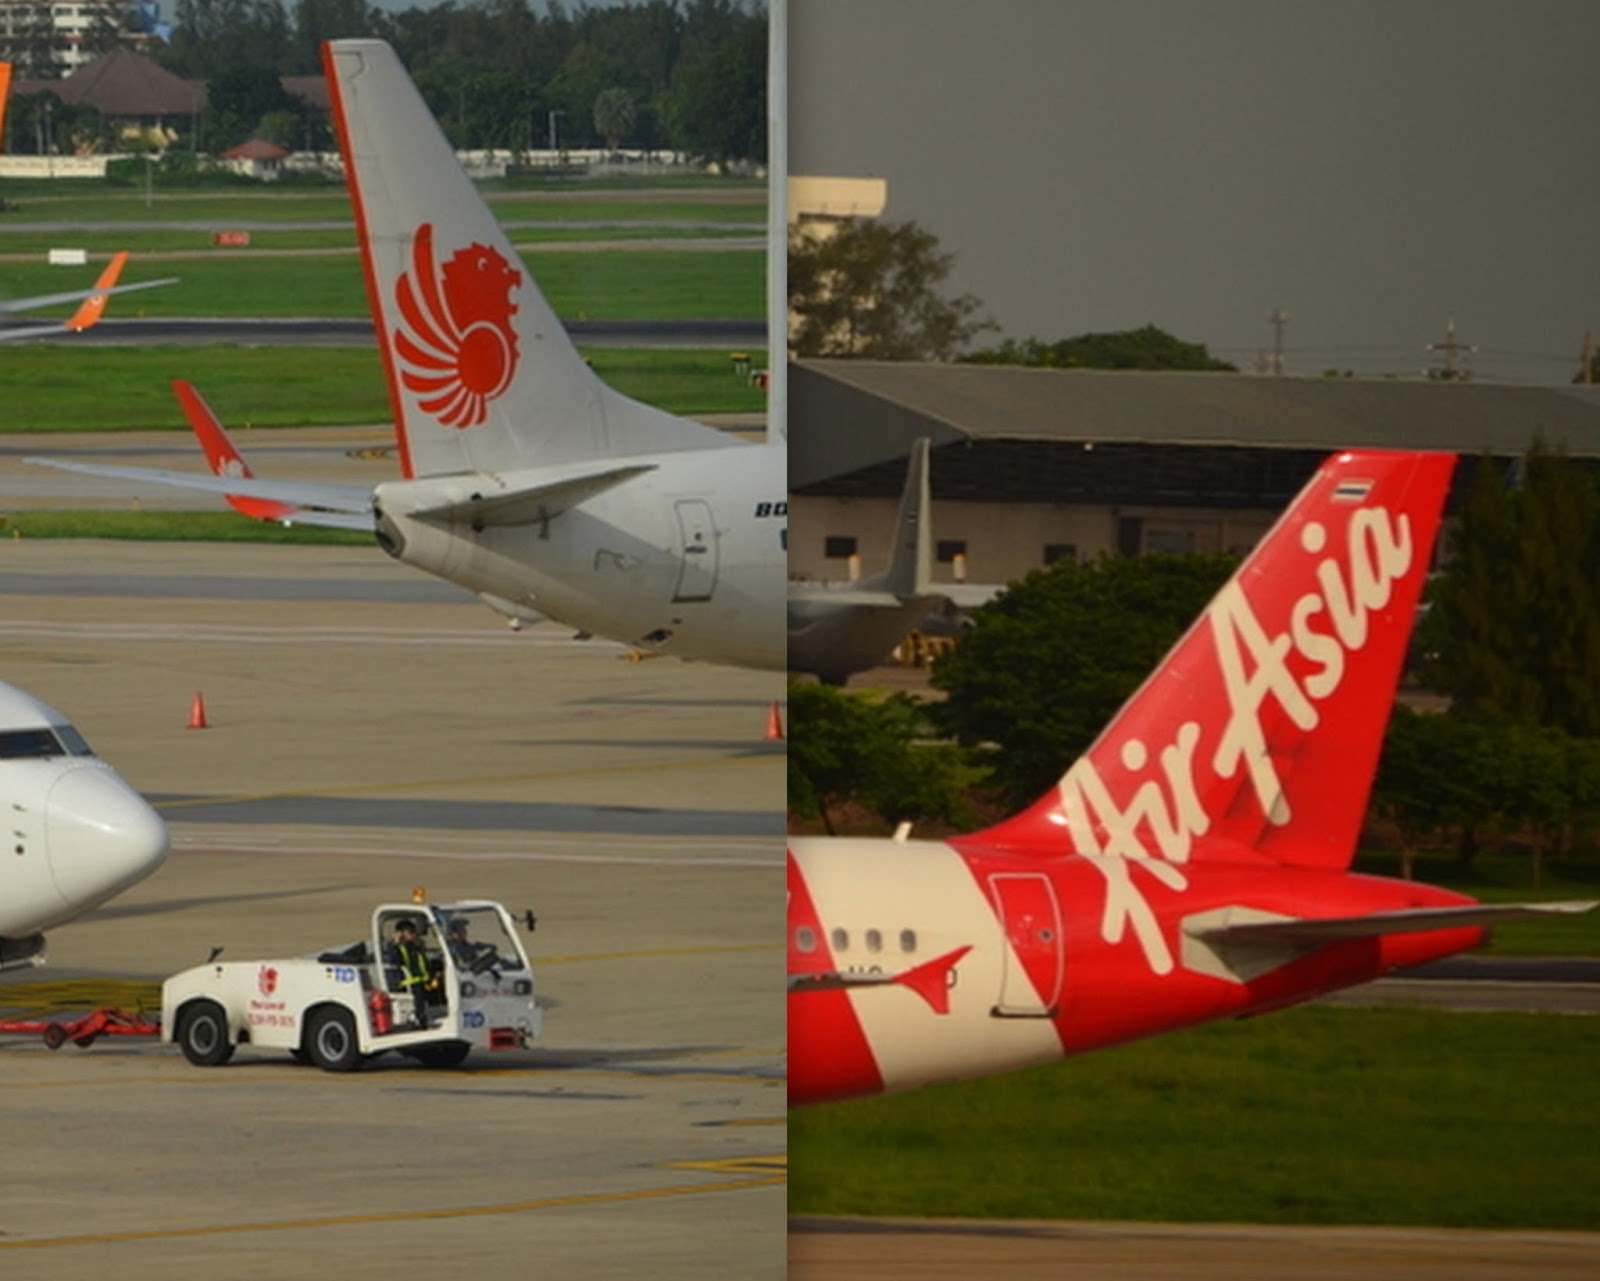 Airasia Vs Malindo Air Which One Is Better The Airline Blog